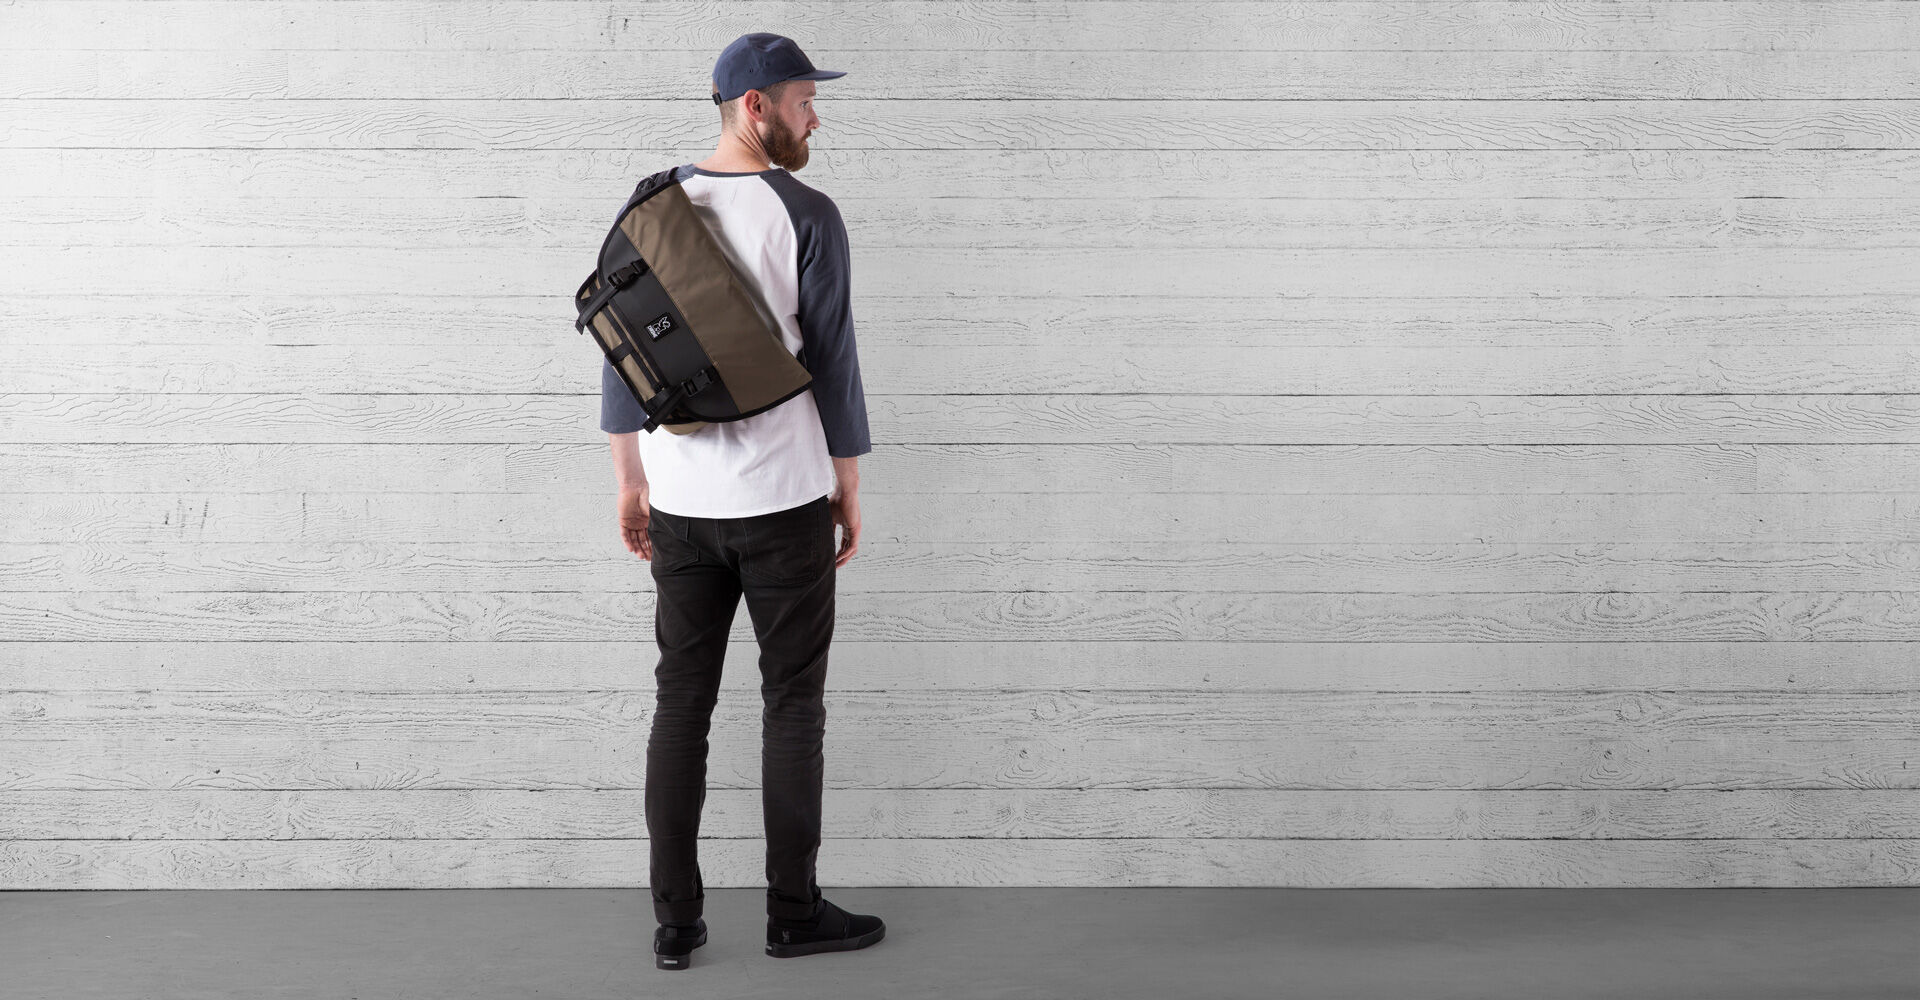 The Welterweight Mini Metro Messenger Bag in Ranger / Black - wide view.